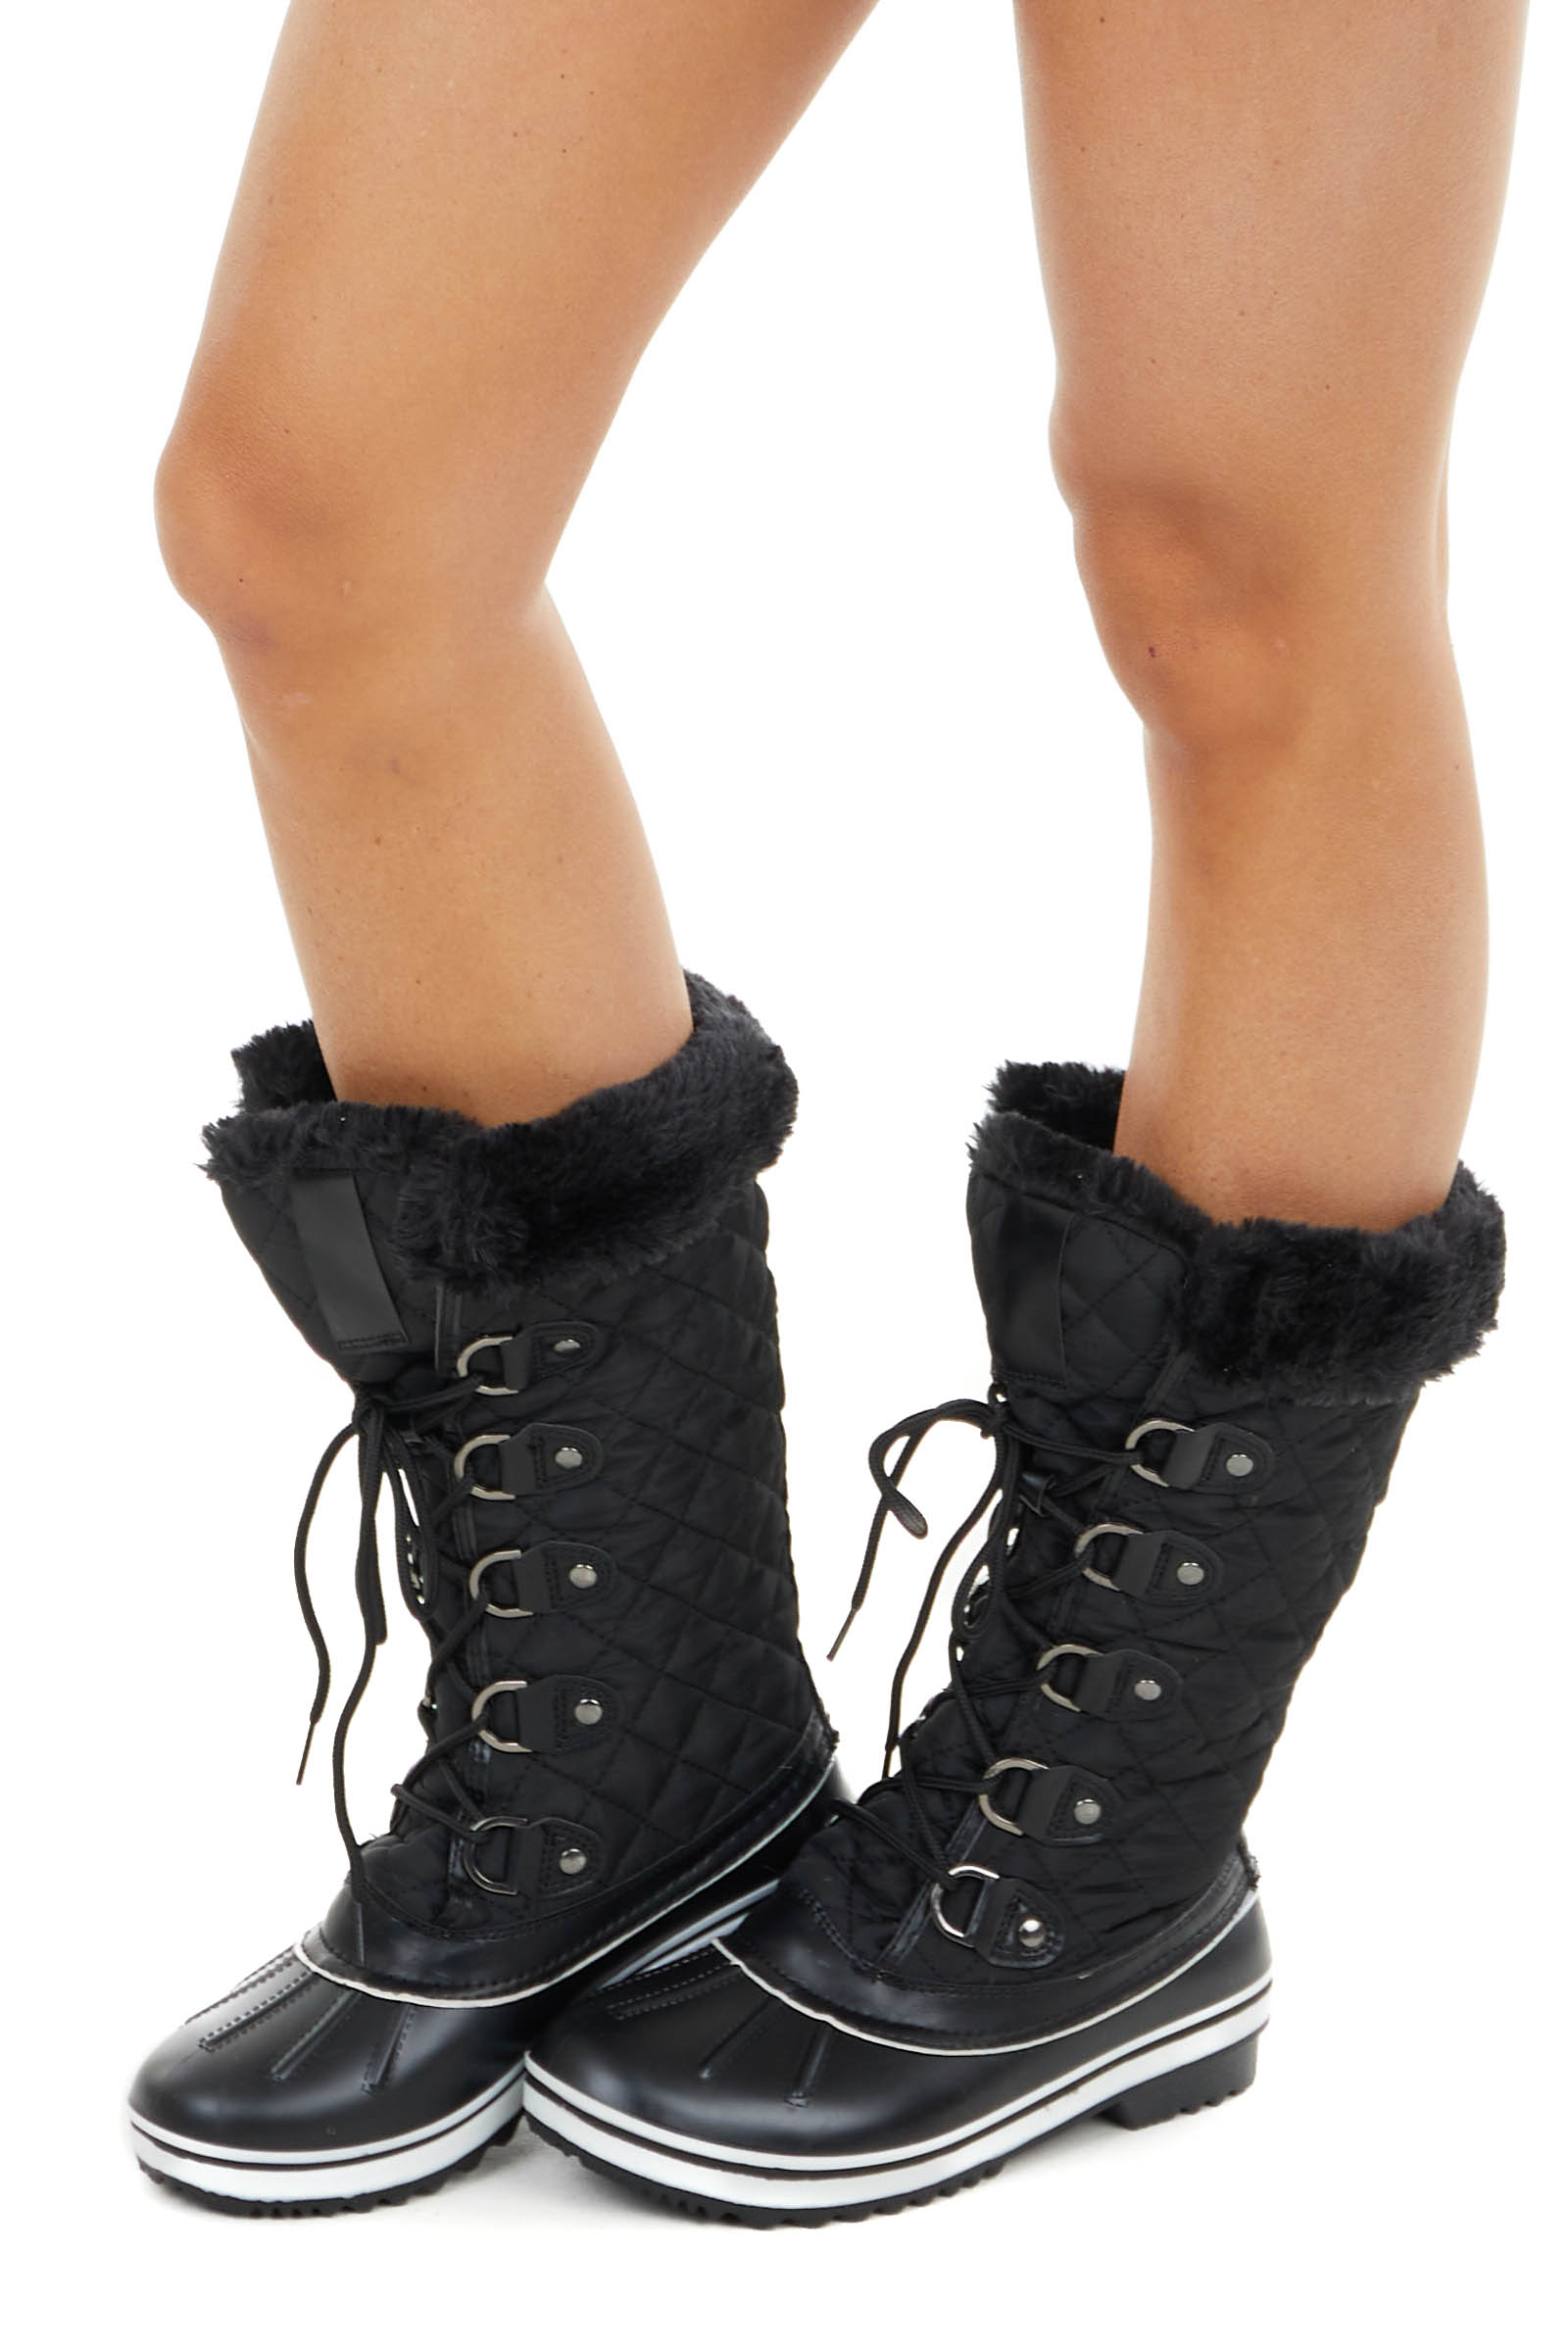 Black Quilted Lace Up Snow Boots with Faux Fur Lining